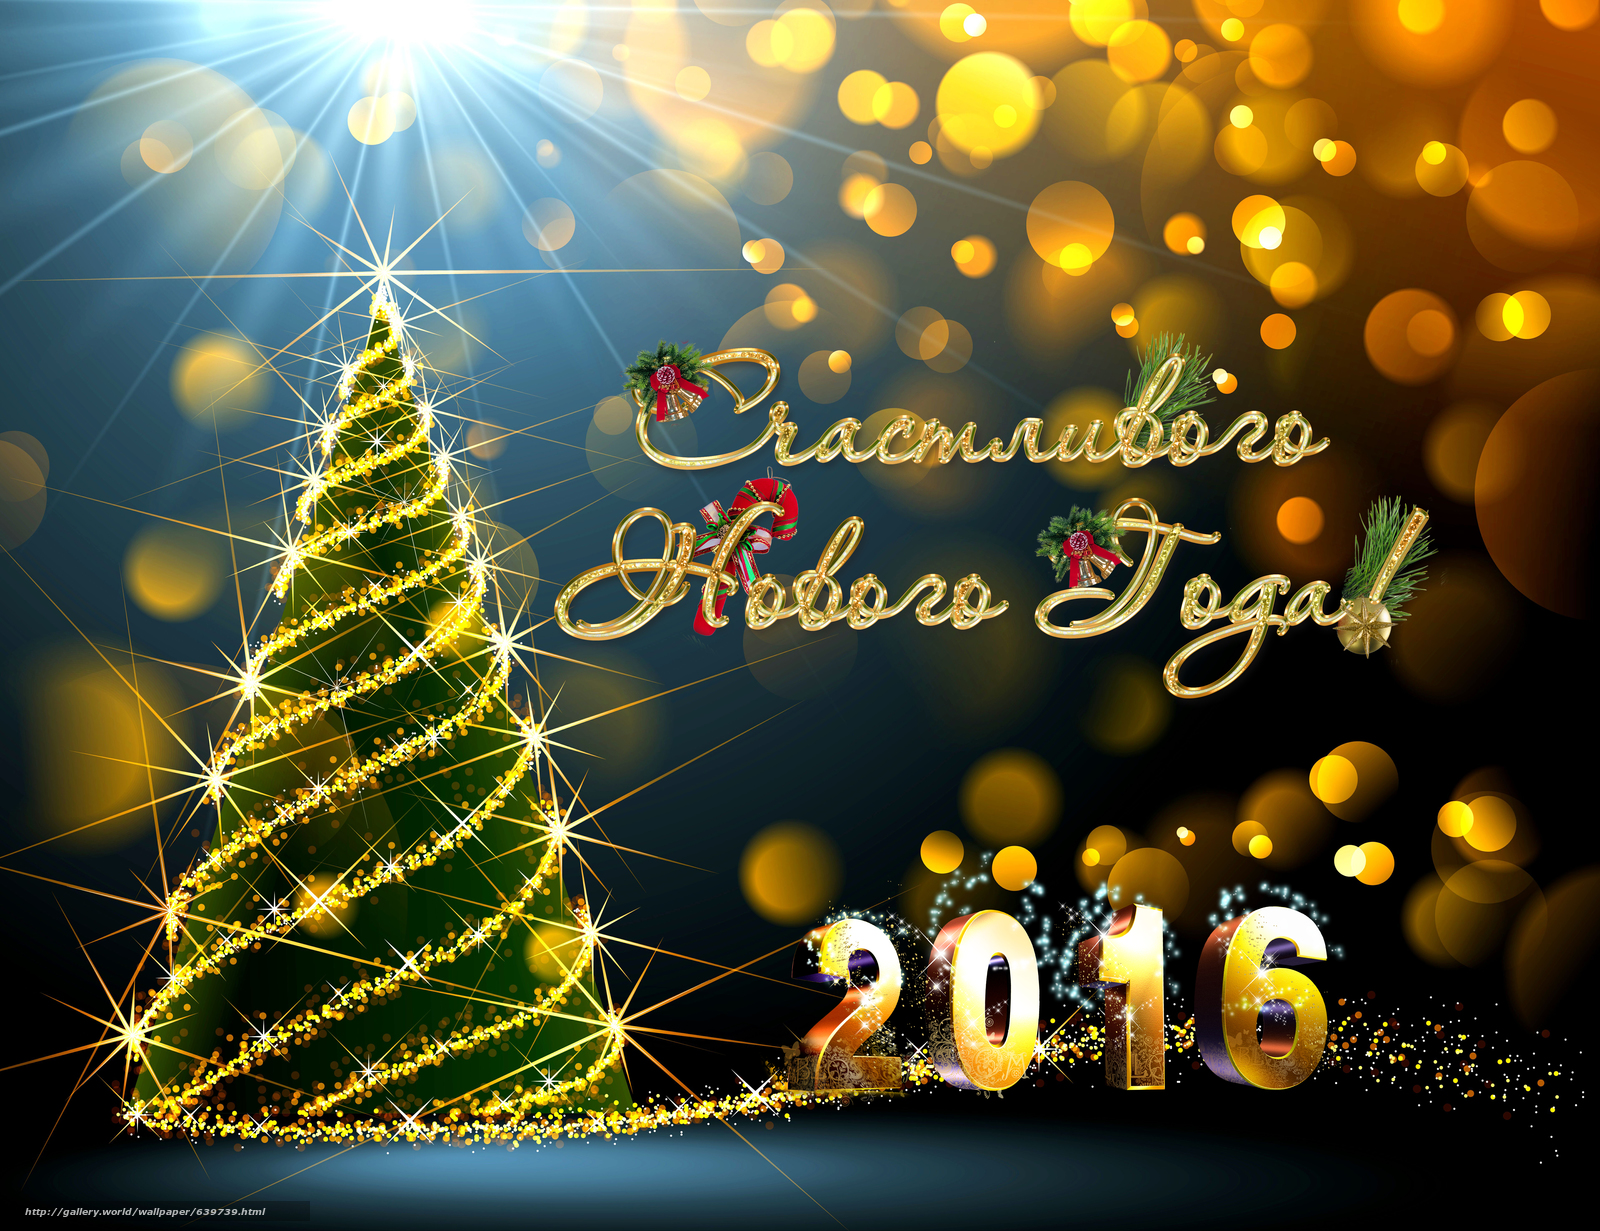 Tlcharger fond d 39 ecran christmas wallpaper happy new year for Fond ecran noel 2016